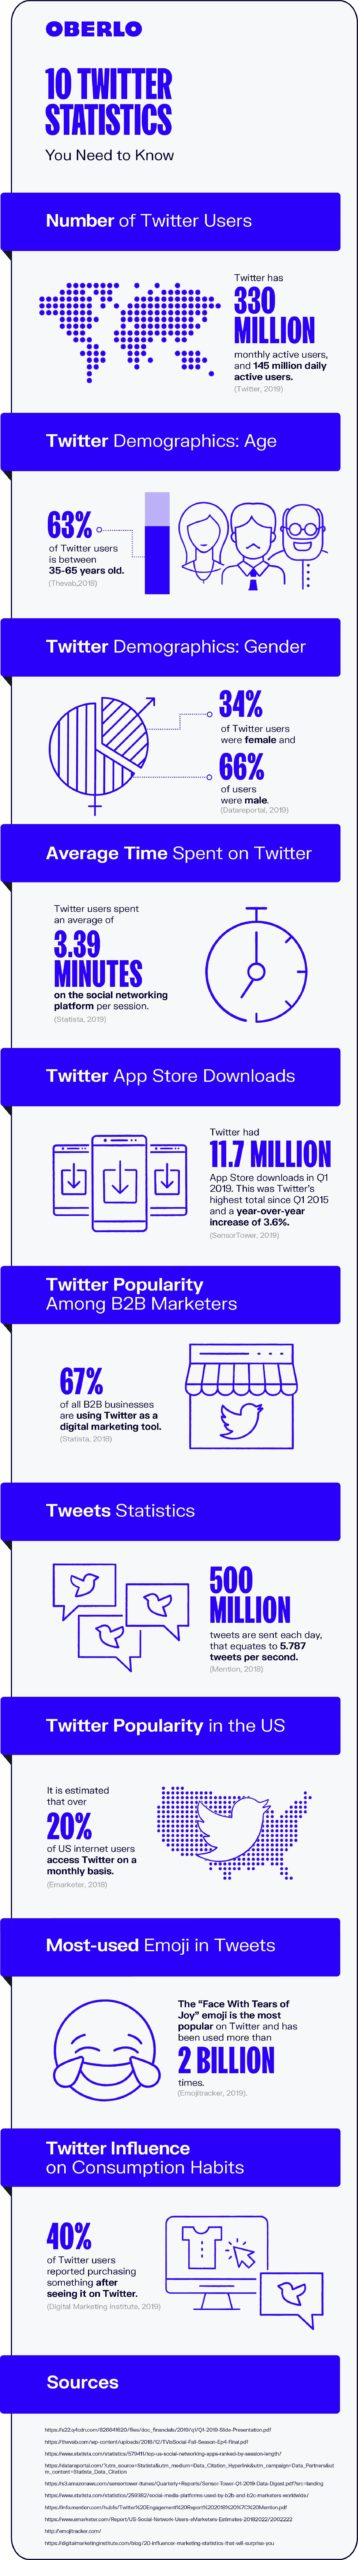 10 Twitter Statistics Every Marketer Should Know in 2020 Infographic Image